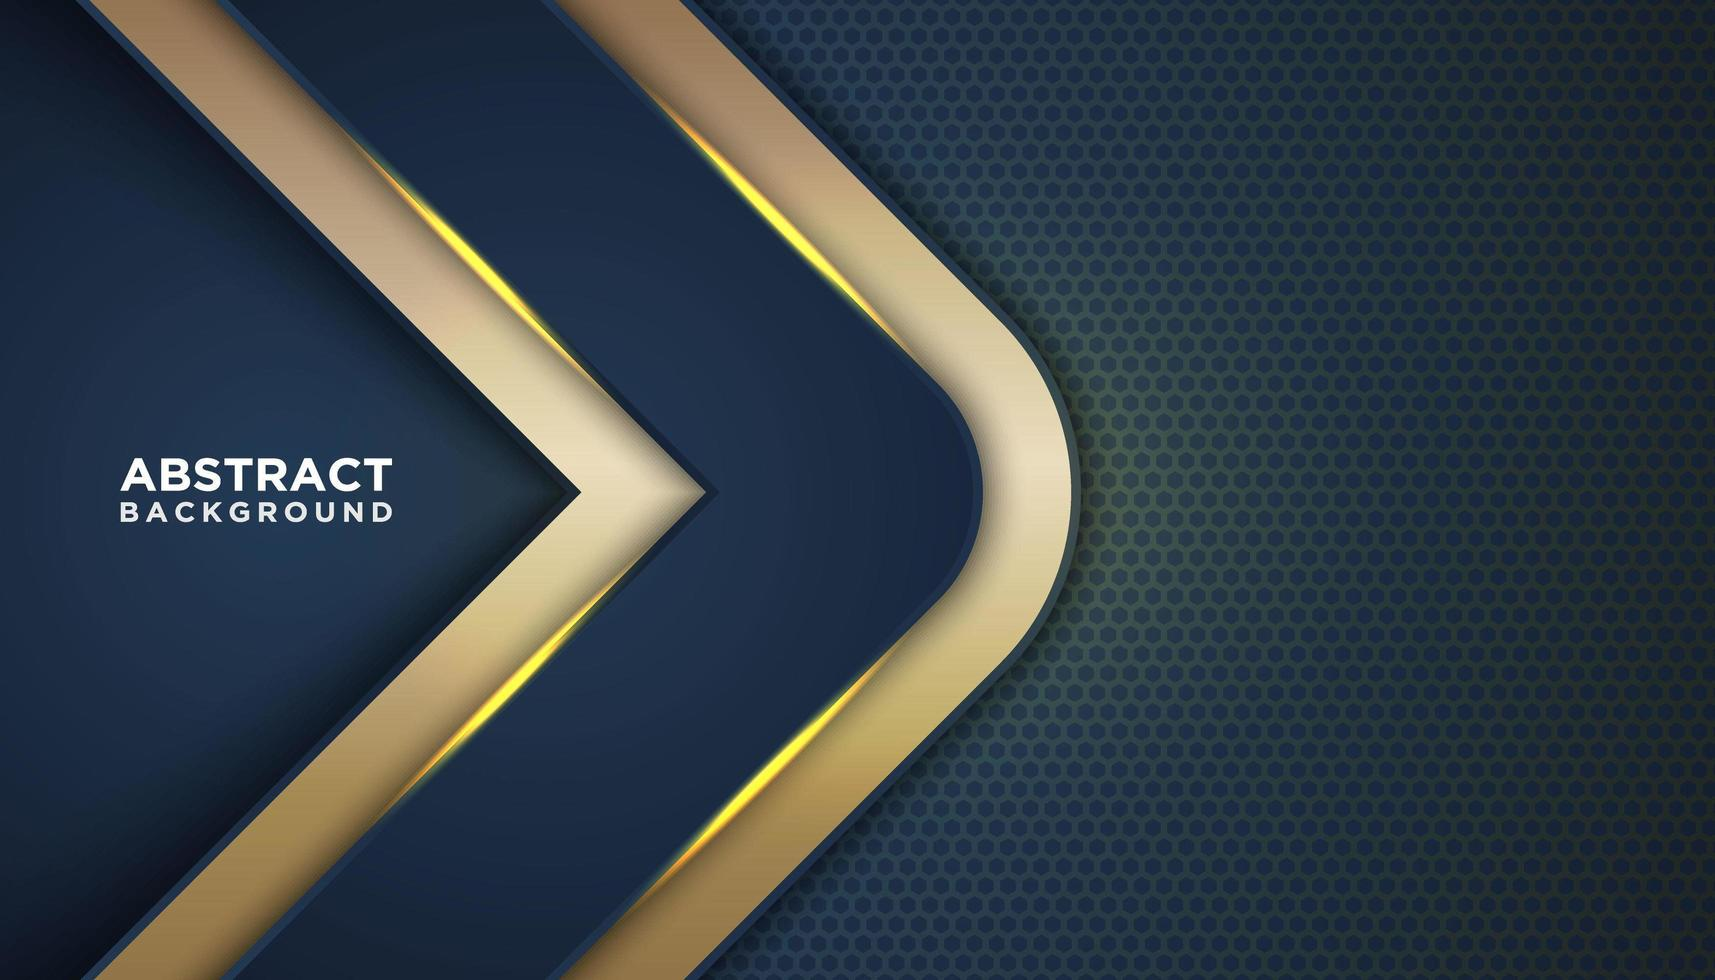 Dark Blue Abstract Background with Gold Angles vector